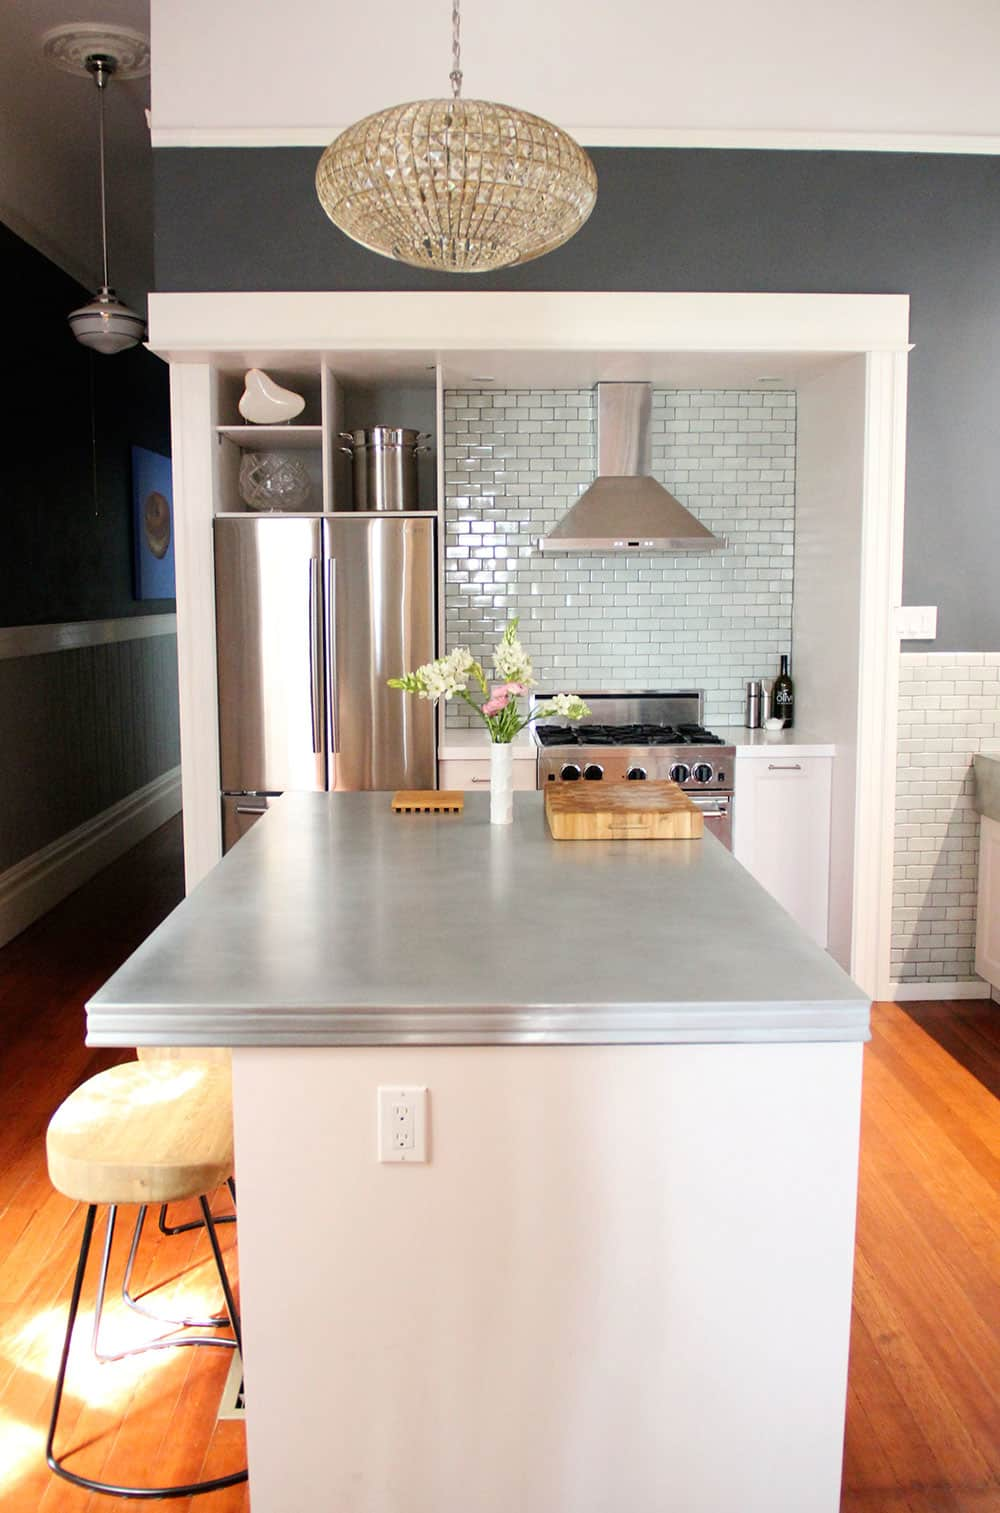 Andi's Kitchen: The Big Reveal